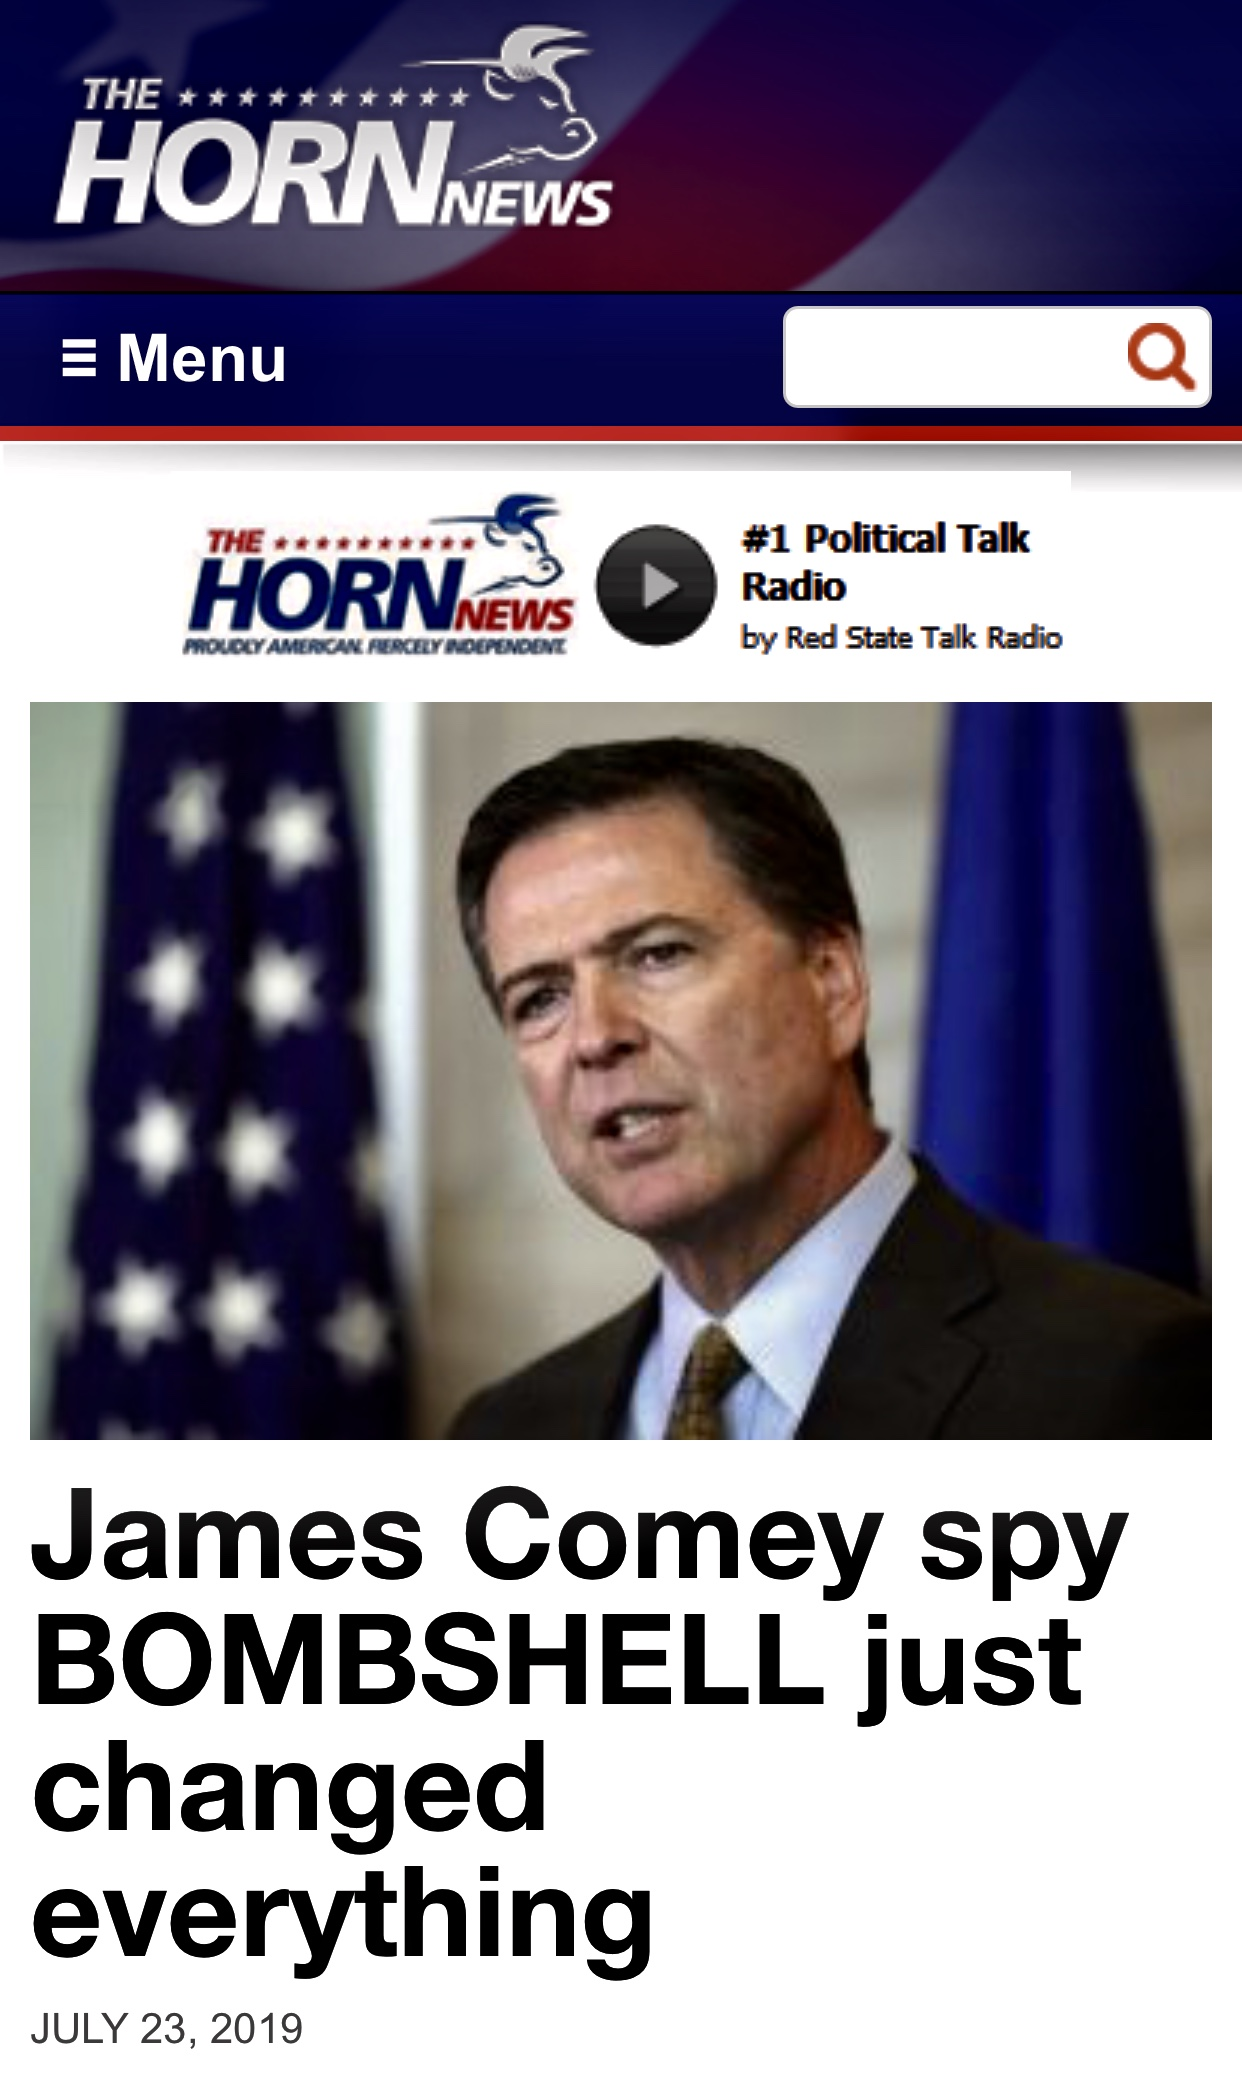 James Comey spy BOMBSHELL just changed everything – The Horn News